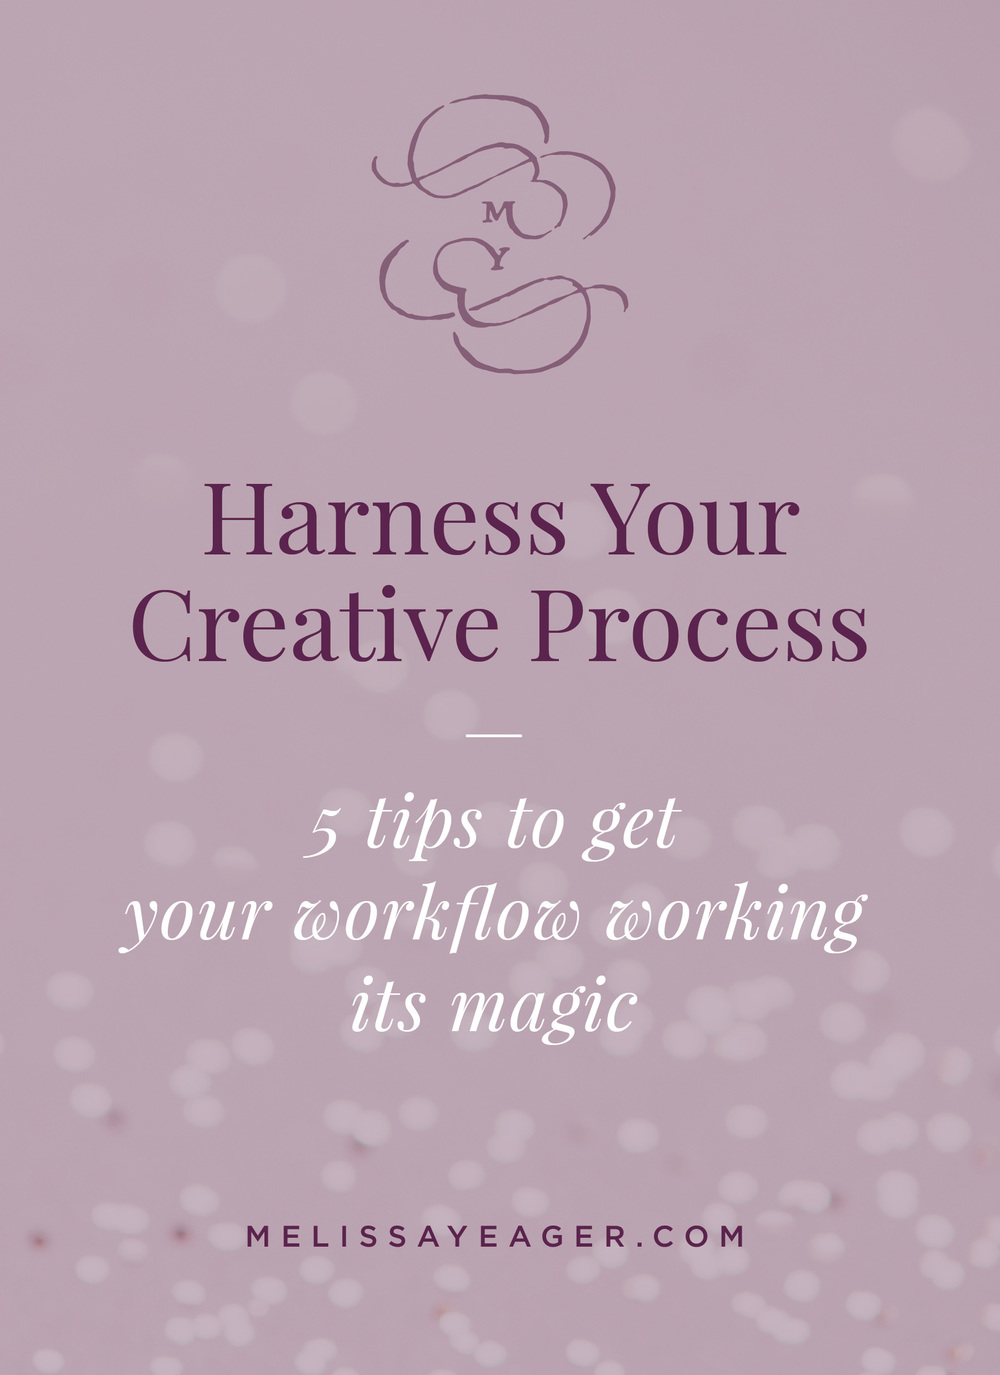 Harness Your Creative Process: 5 tips to get your workflow working its magic